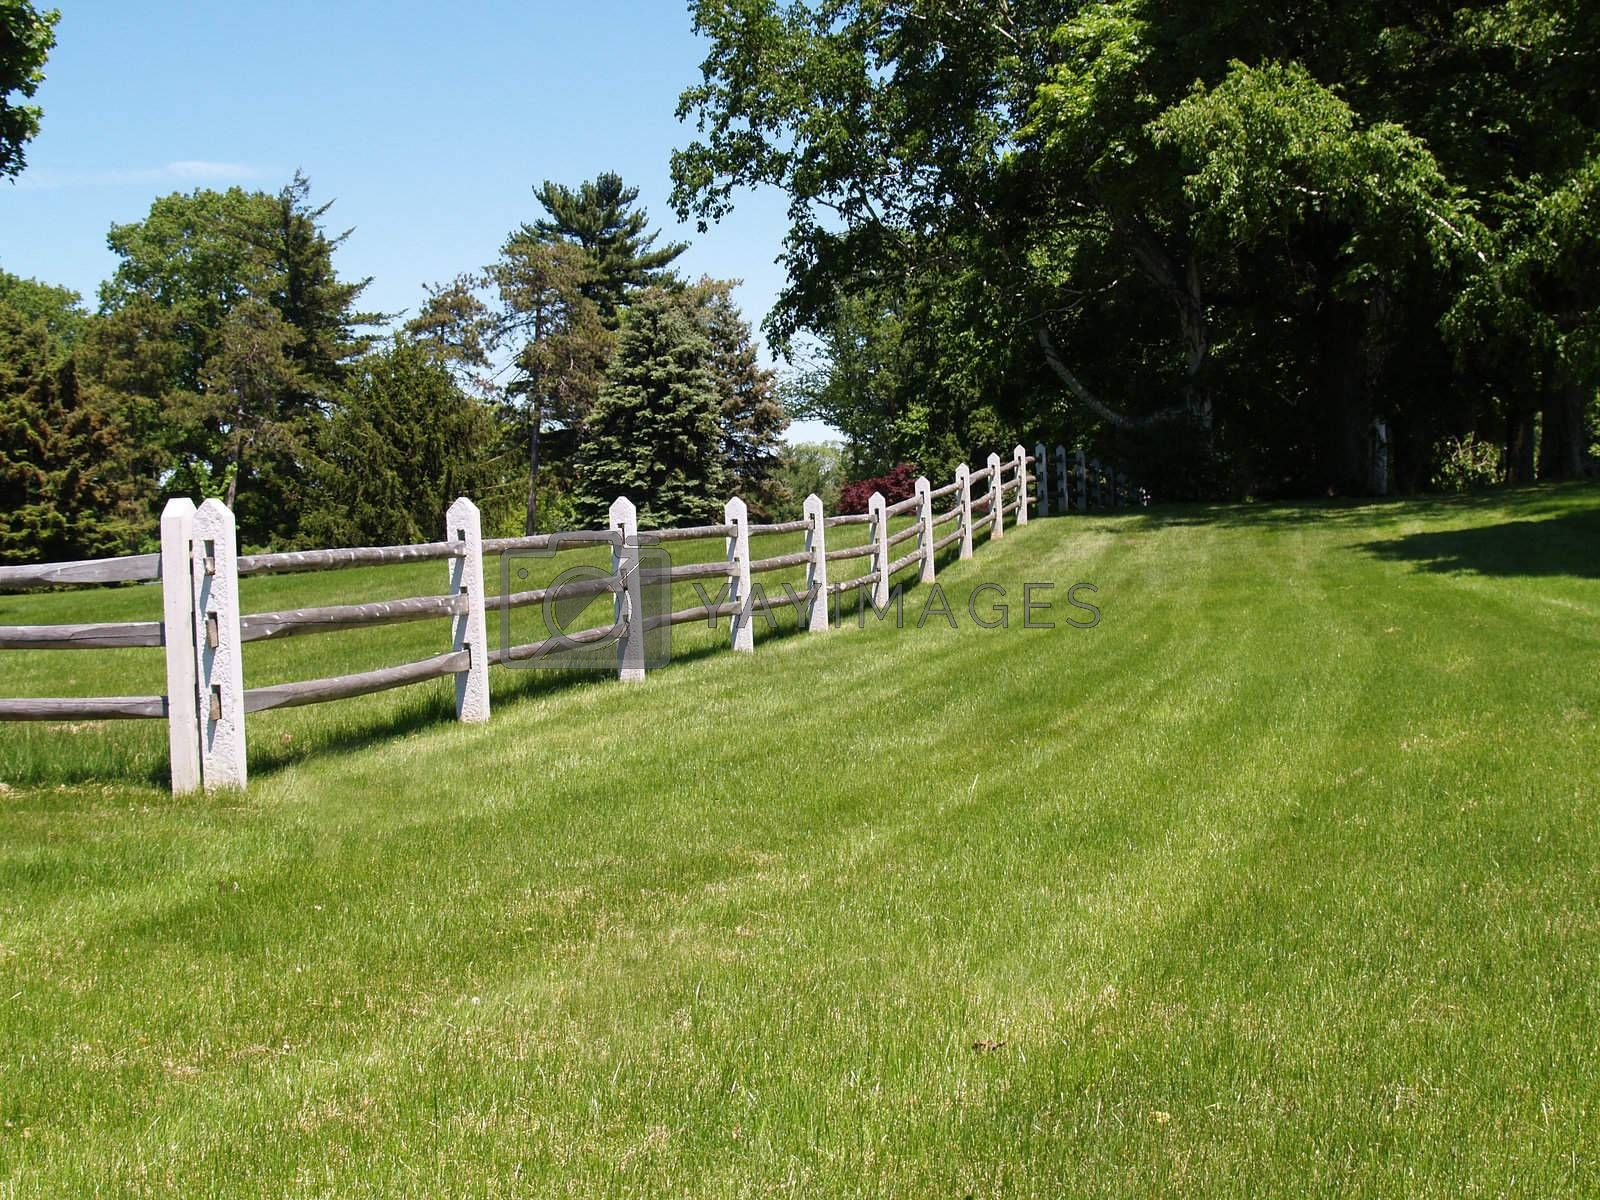 a worn wooden fence by field and trees